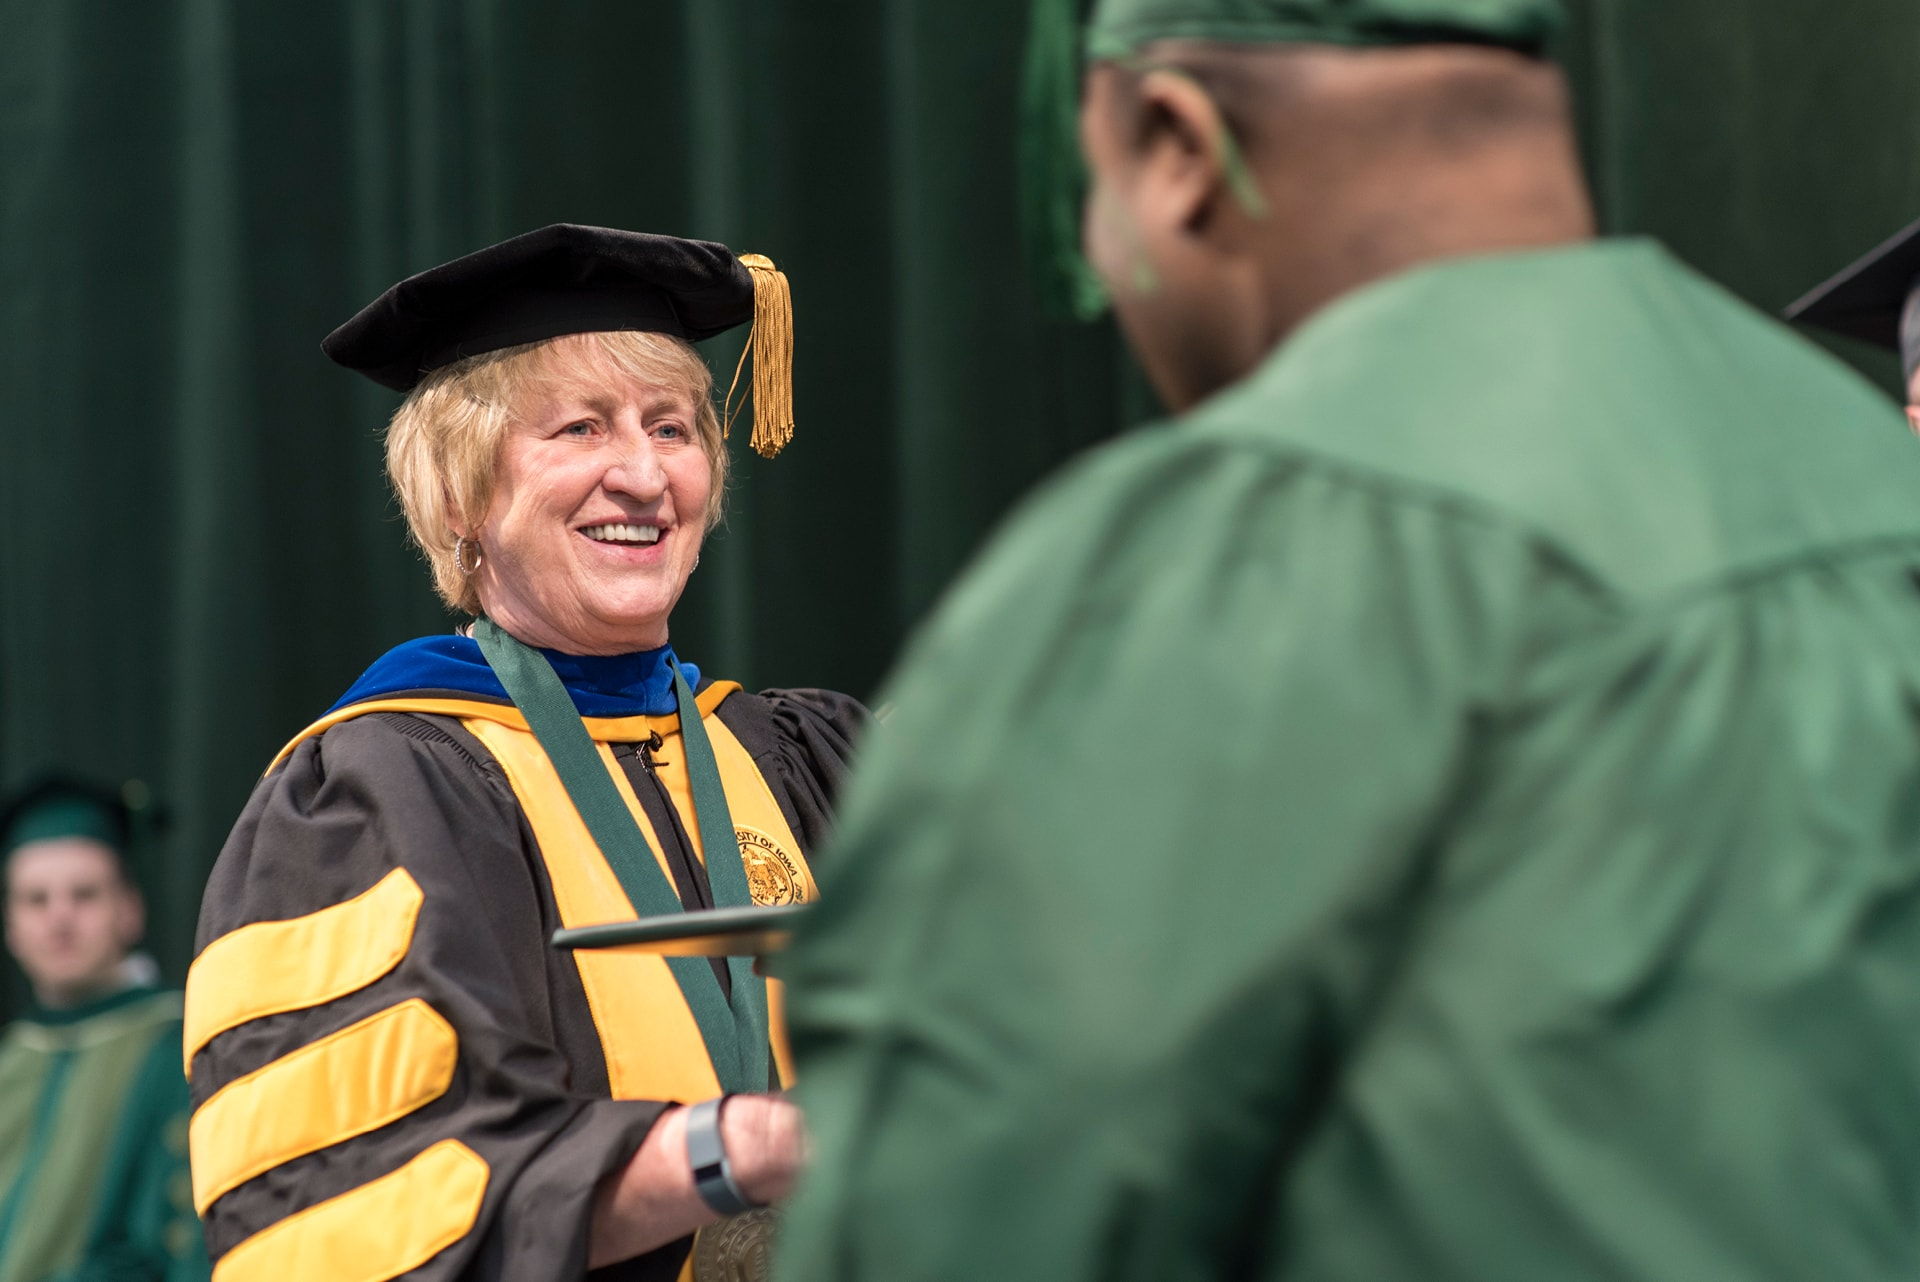 After nearly 16 years of serving as president of Delta College, Dr. Jean Goodnow announced she will retire in August 2021.